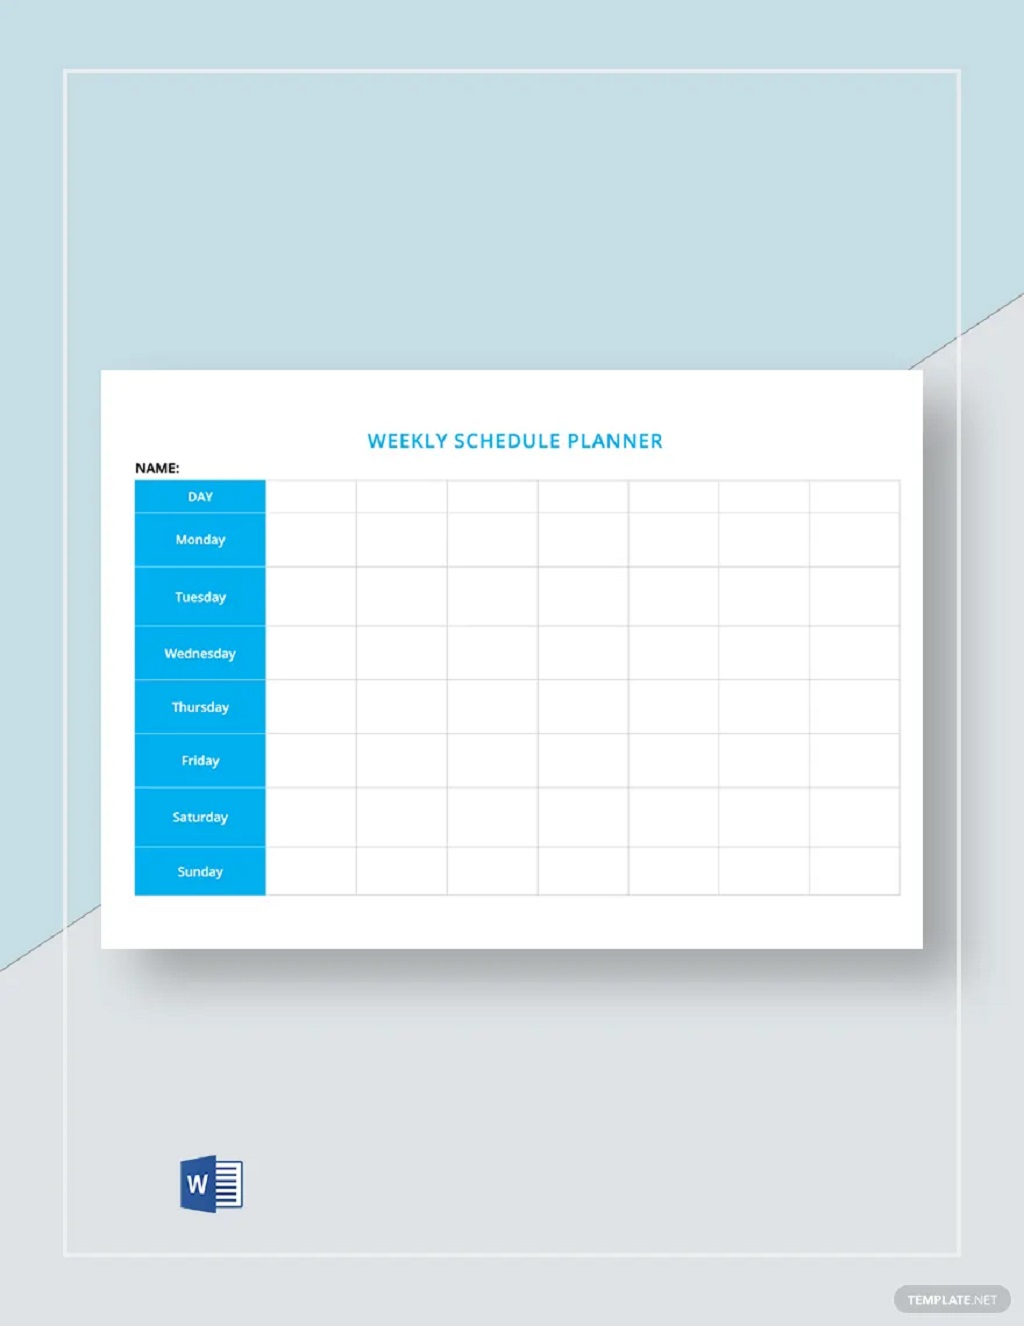 Free Blank Weekly Schedule Sample Template Planner Printable Google Sheets Searches Related To Excel  Samples Large